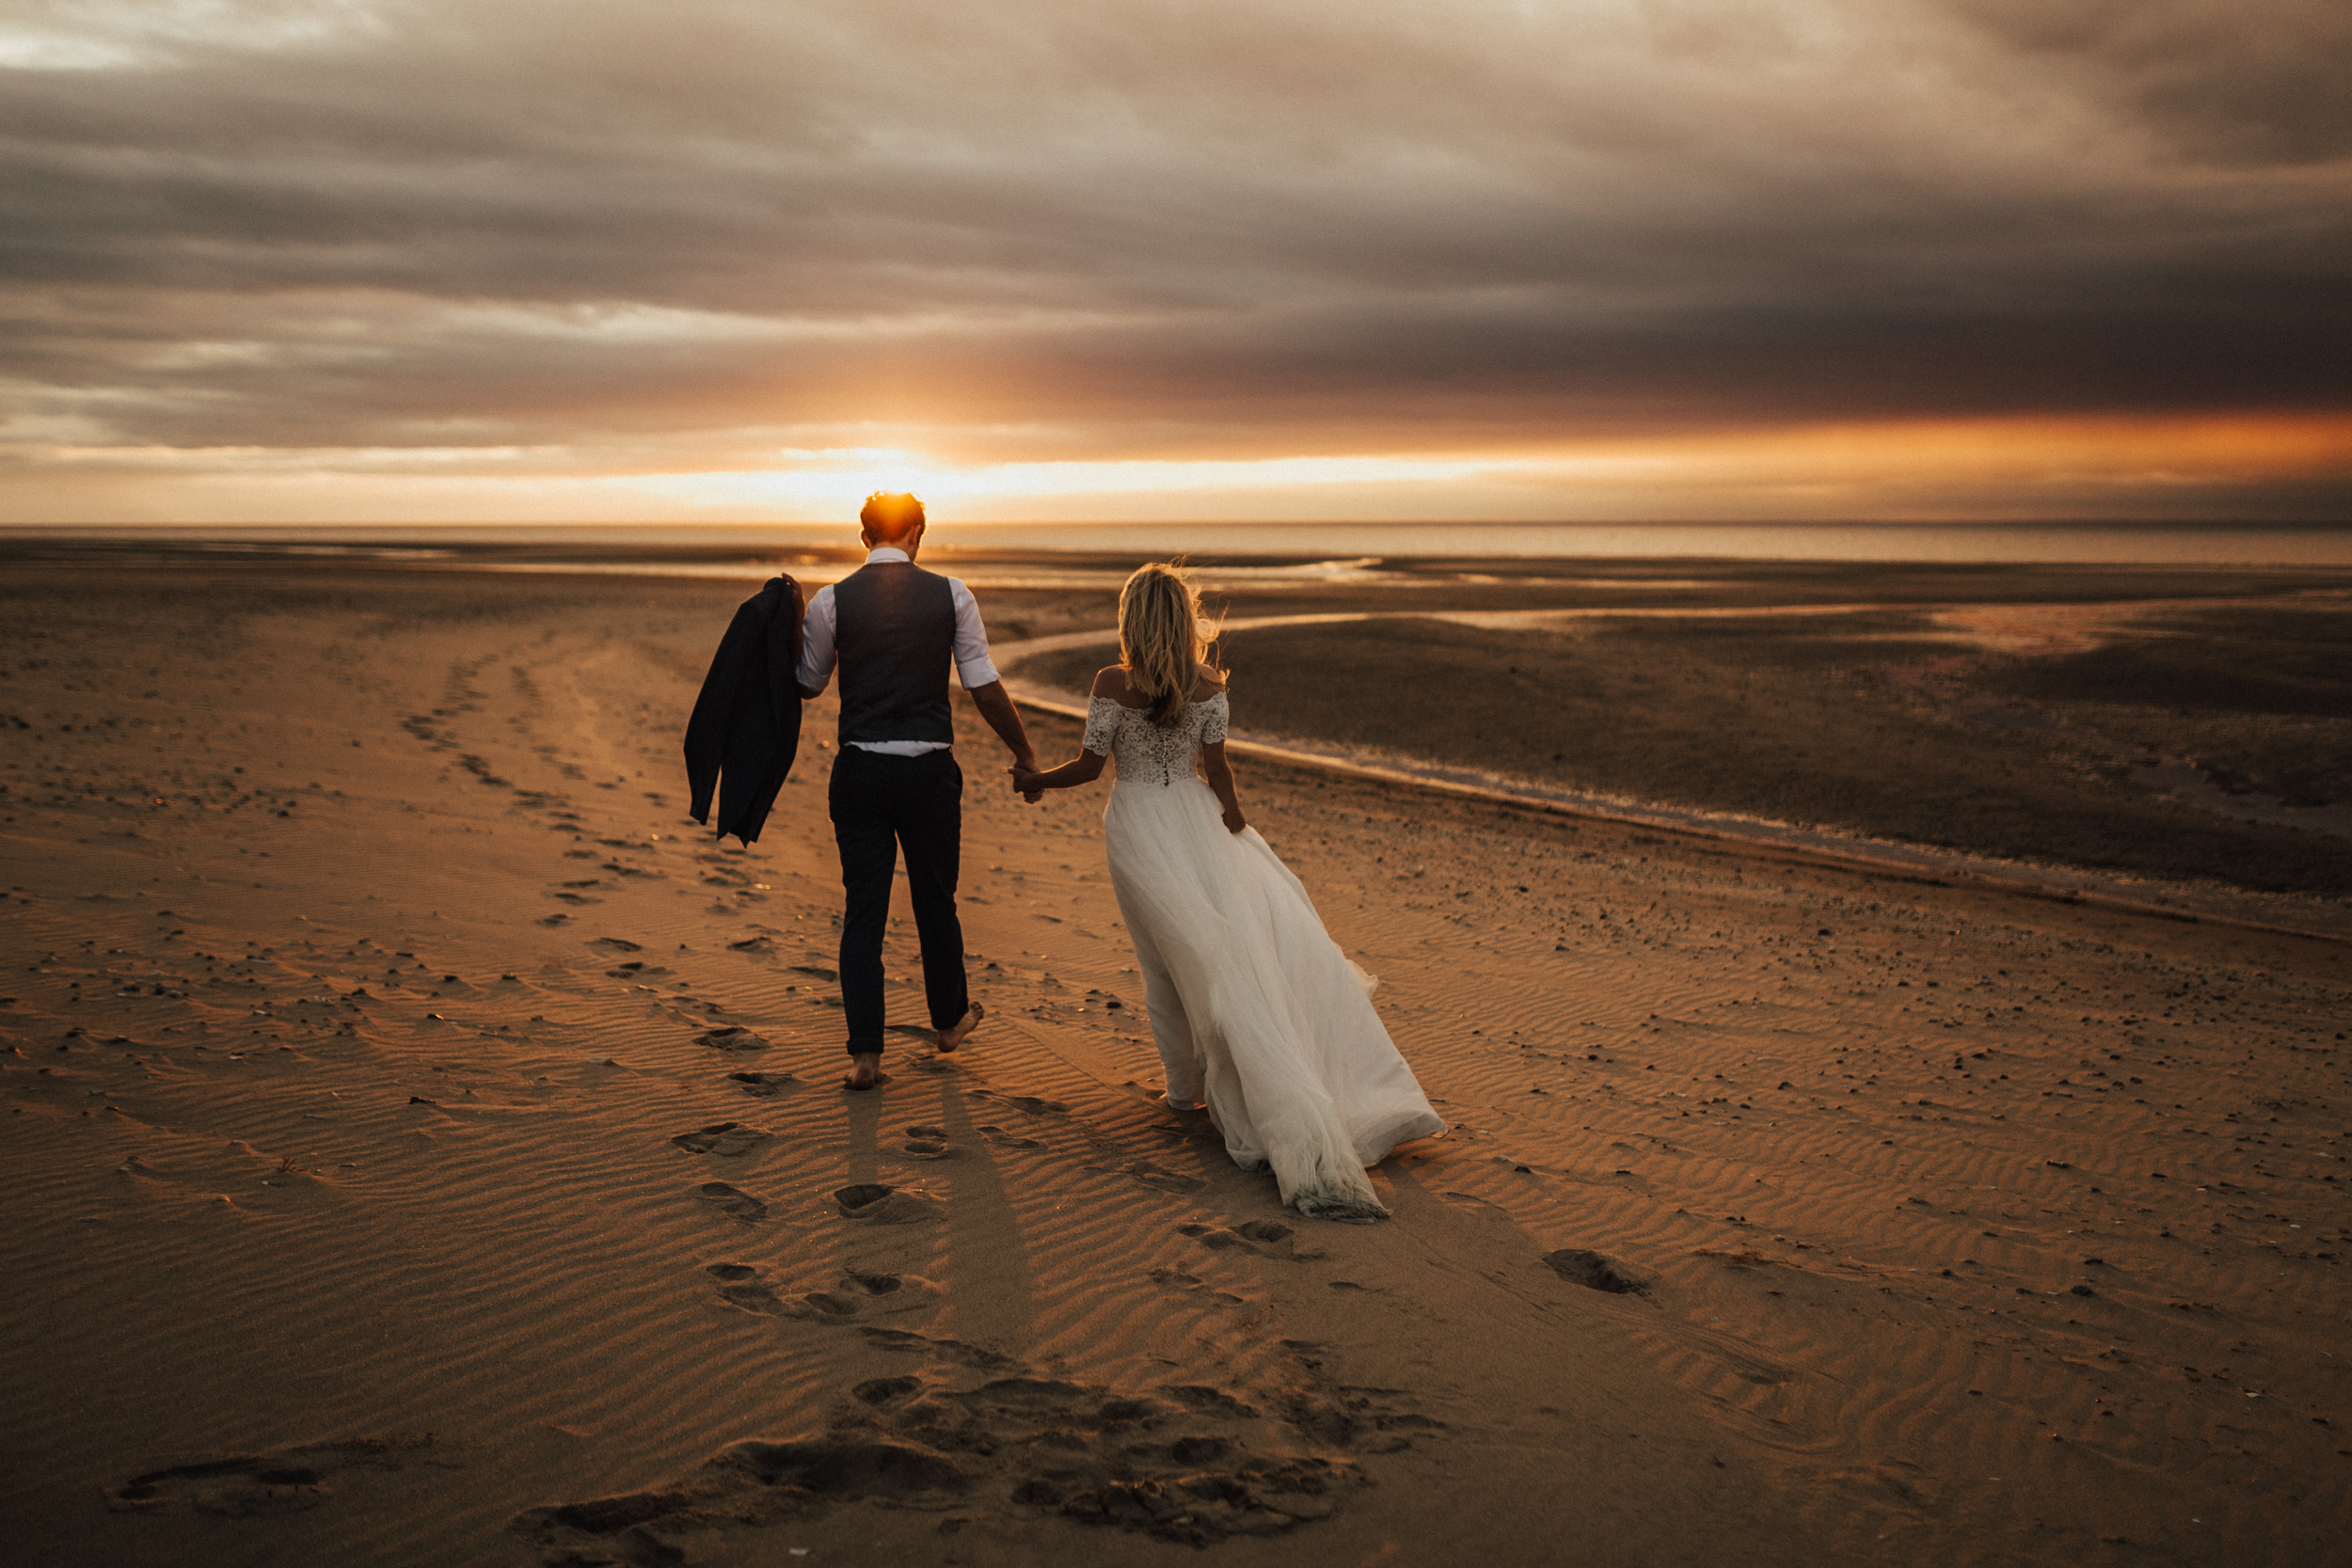 Claire-Clive-Wedding-Norfolk-Beach-Session-Love-Darina-Stoda-Photography-344.jpg